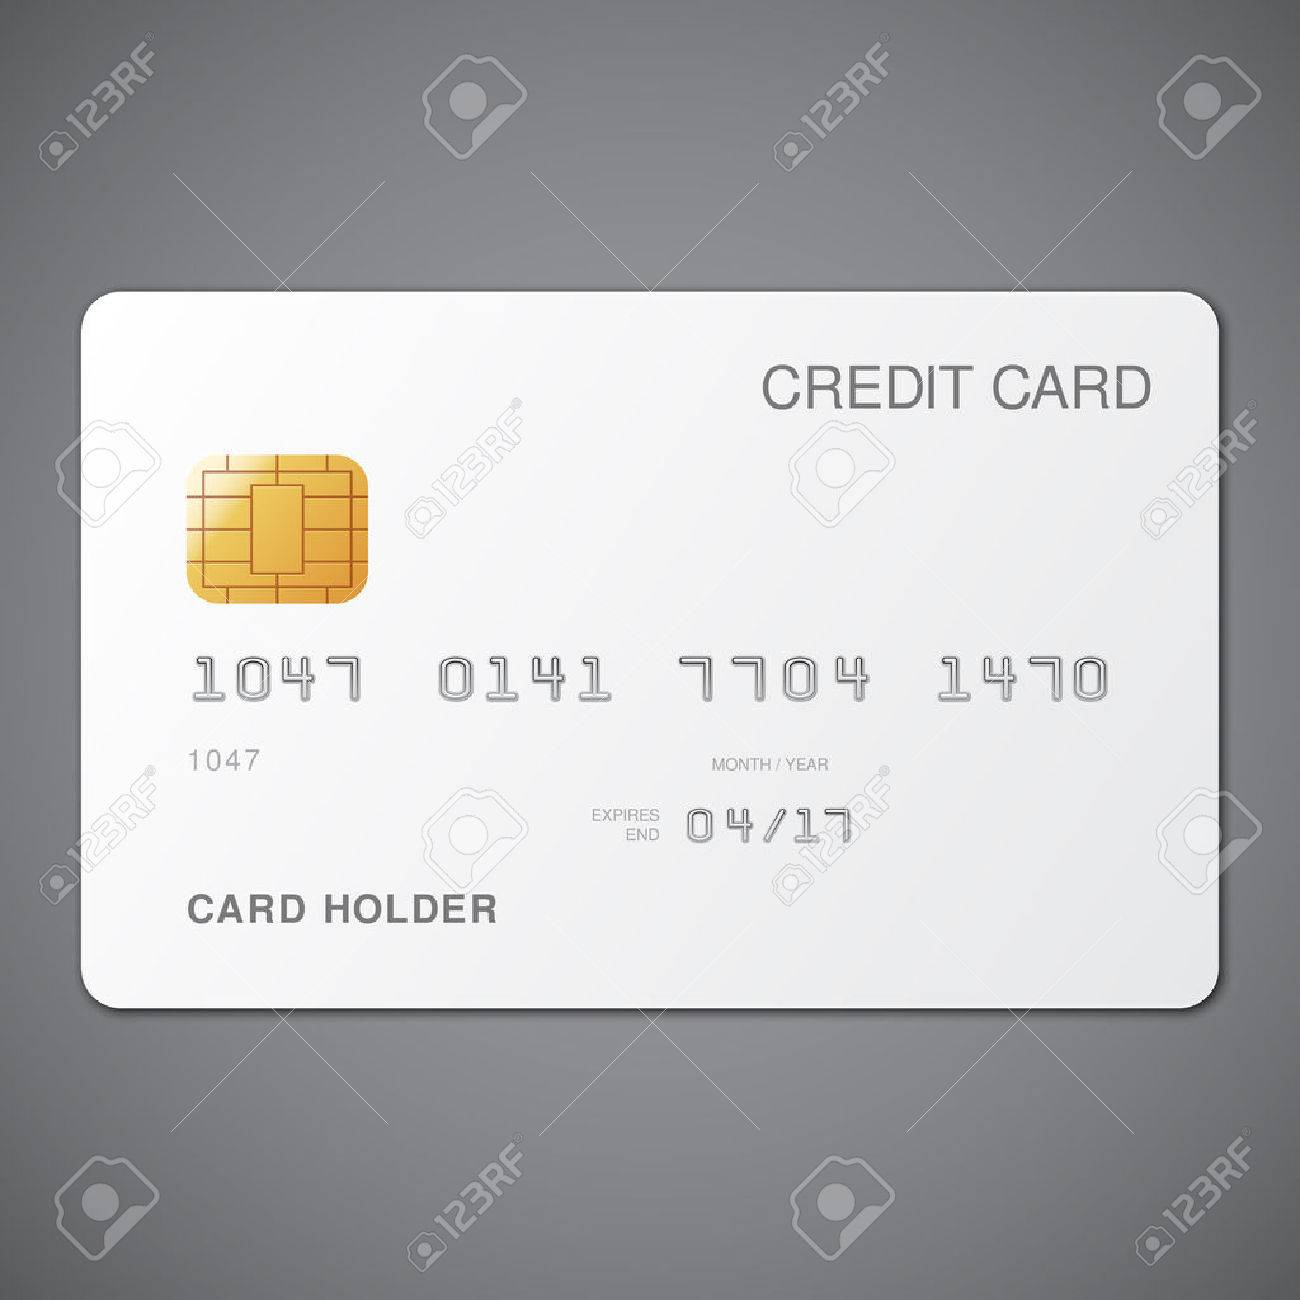 White Credit Card Template On Grey Background Royalty Free Cliparts - Blank visa credit card template